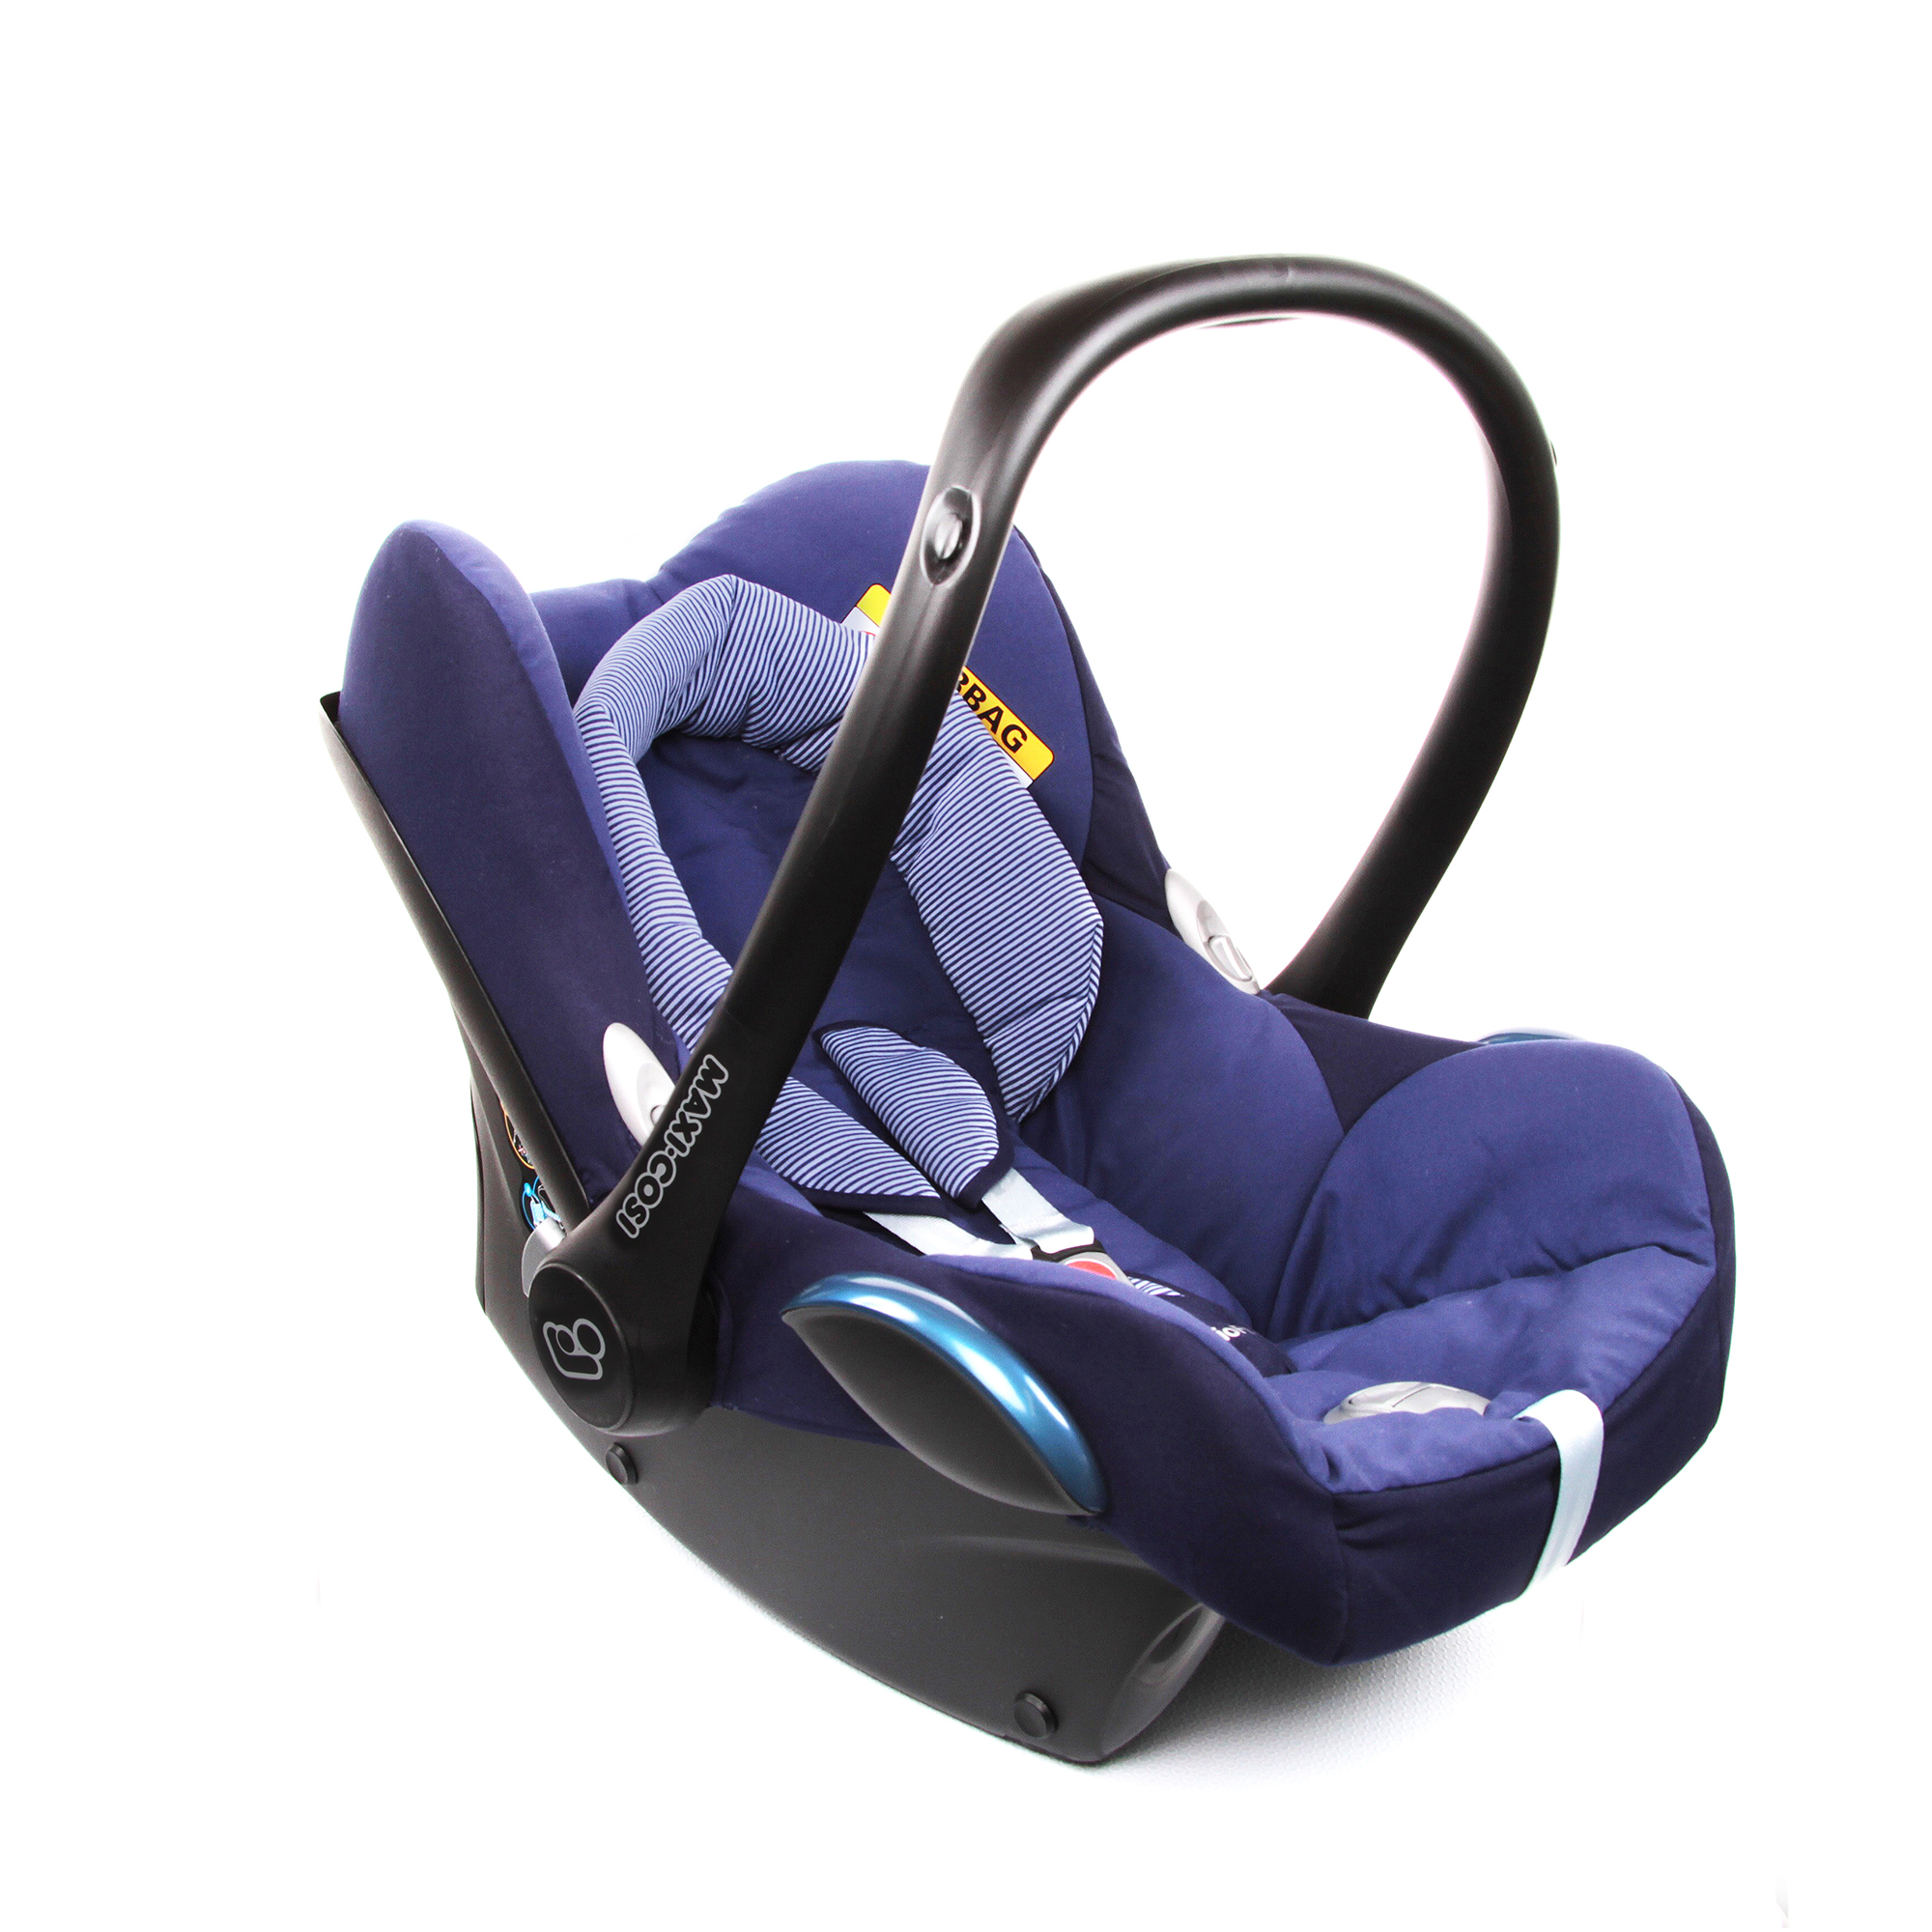 maxi cosi infant car seat cabriofix 2017 river blue buy at kidsroom car seats. Black Bedroom Furniture Sets. Home Design Ideas